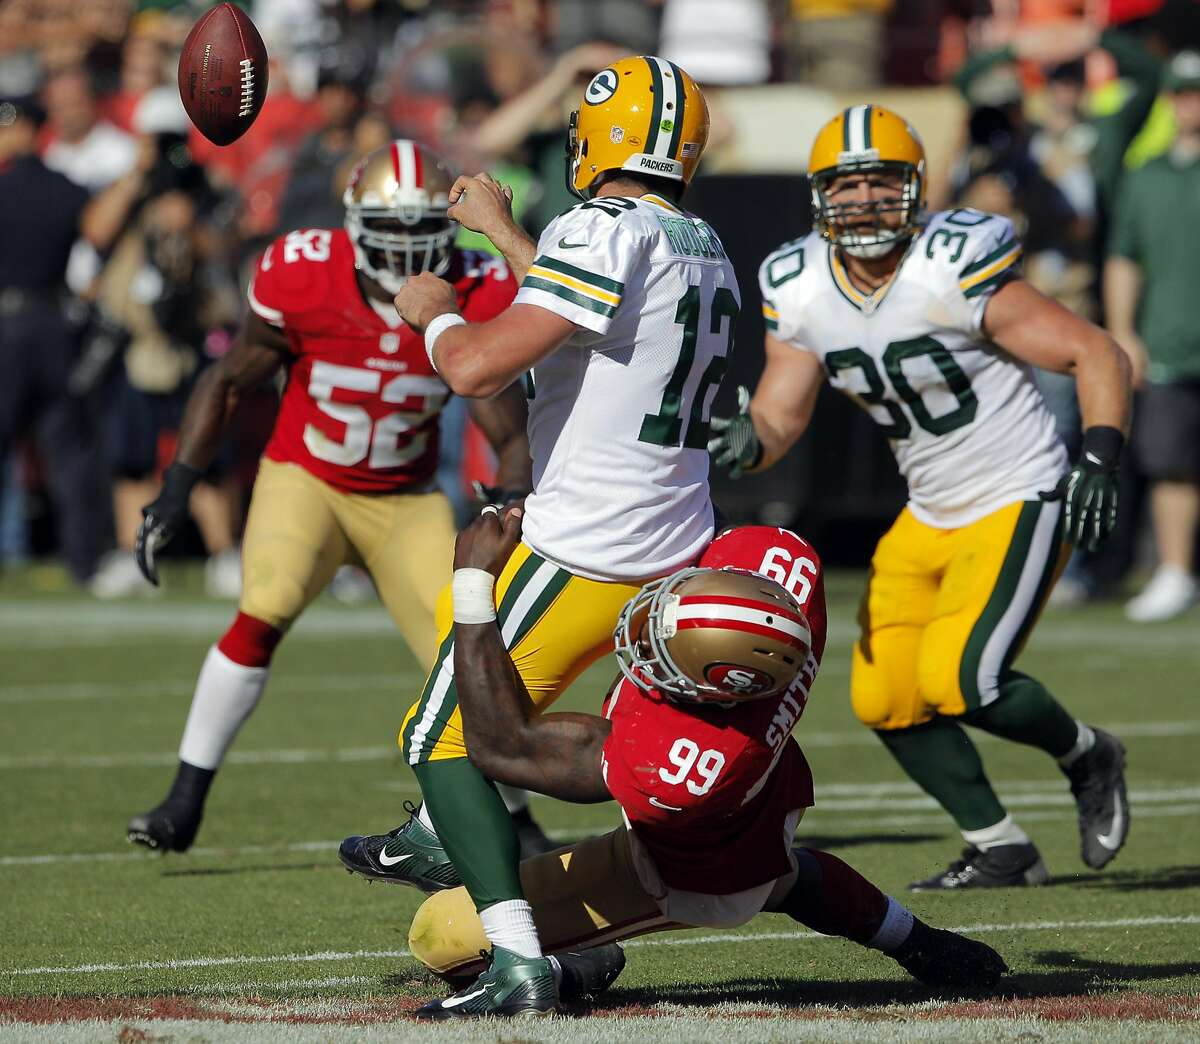 Aldon Smith pressures Aaron Rogers who tries to throw a shuffle pass in the final seconds of the fourth quarter. The San Francisco 49ers played the Green Bay Packers at Candelstick Park in San Francisco, Calif, on Sunday, September 8, 2013.